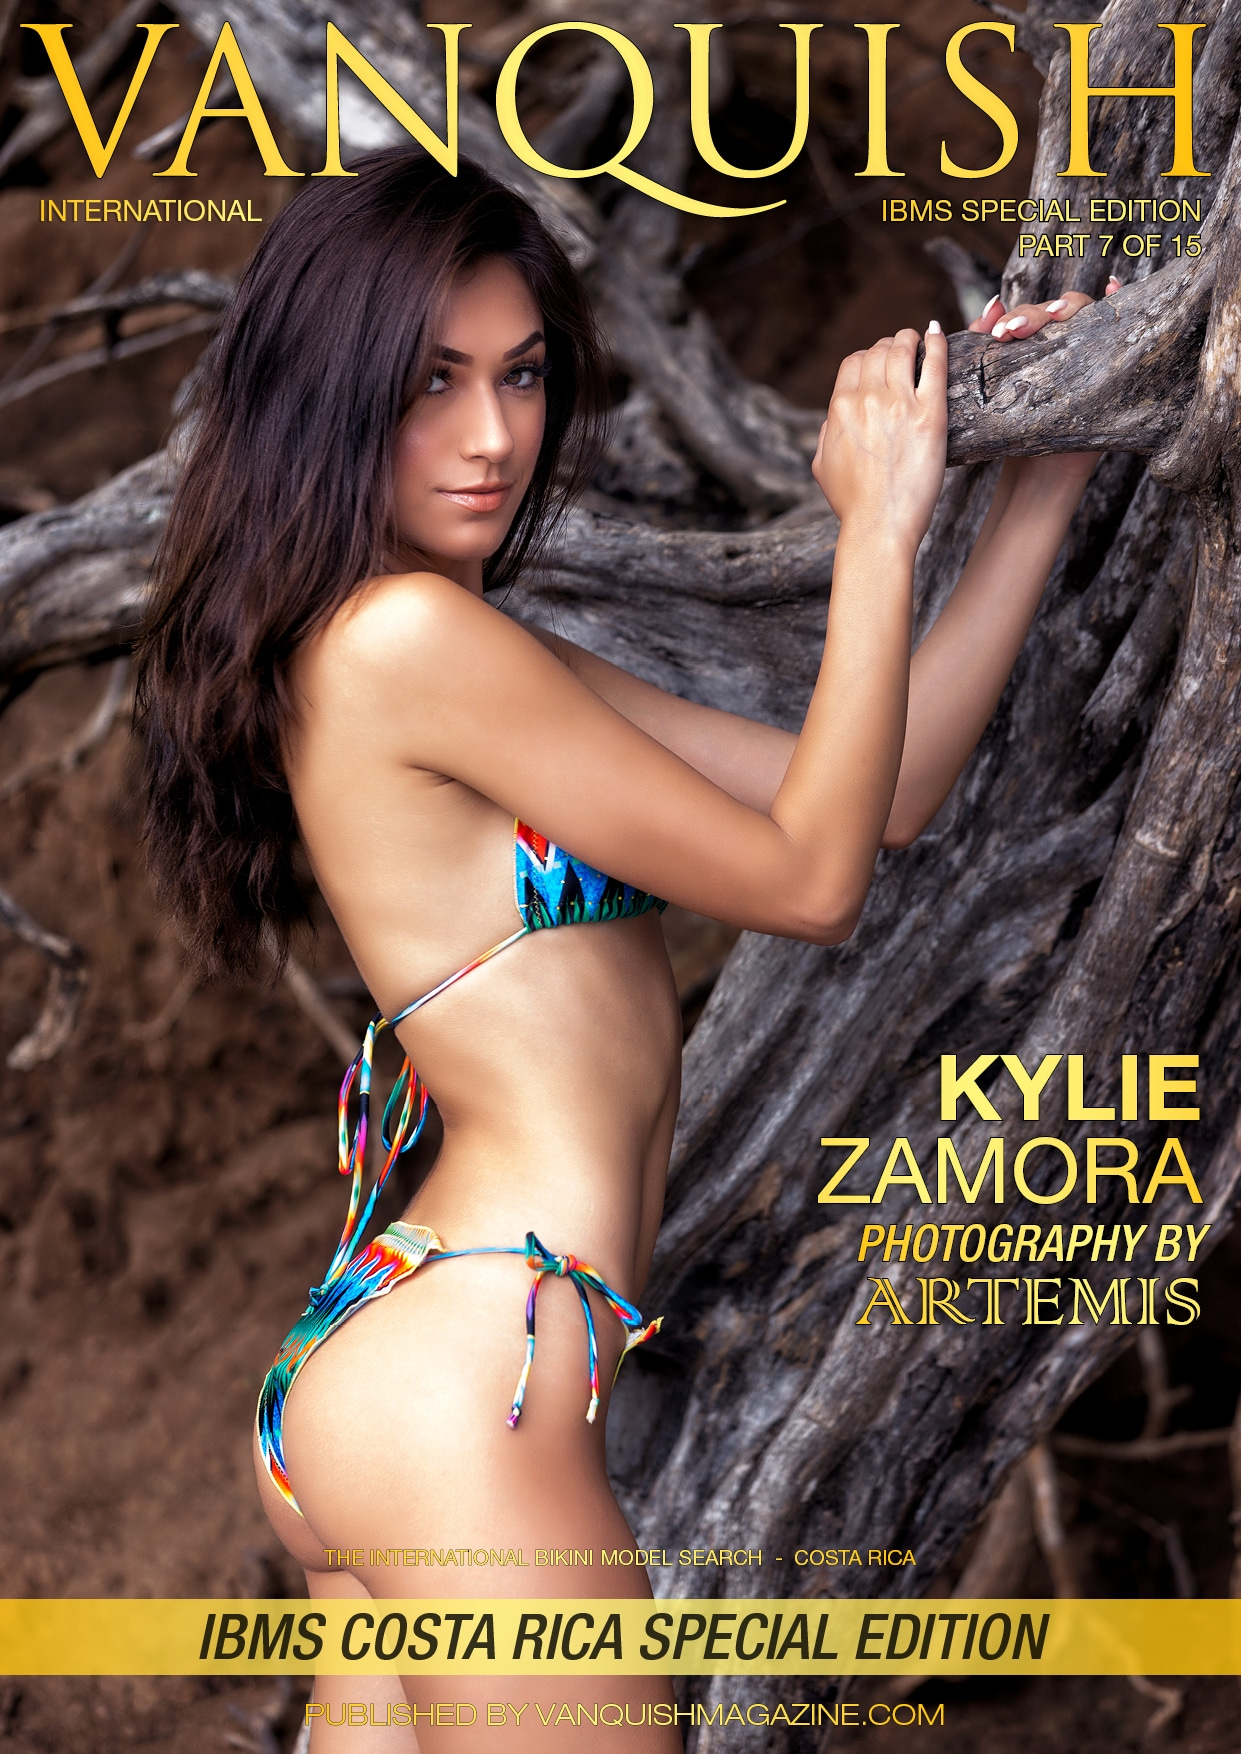 ***Vanquish Cover*** Featuring Stunning Kylie Zamora